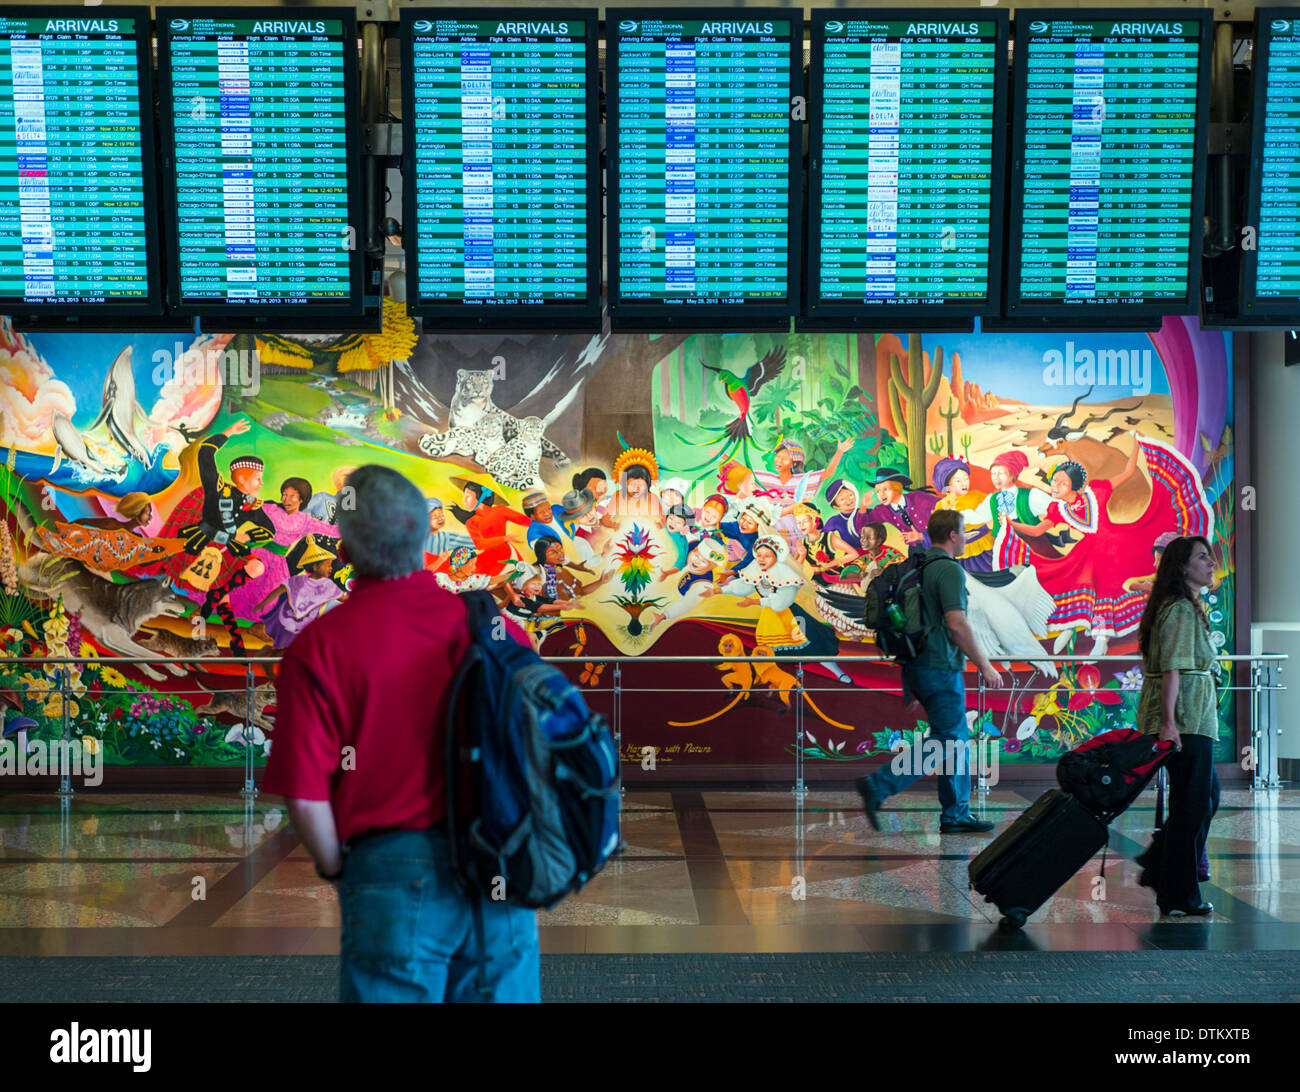 Travelers pass colorful mural titled 'In Peace & Harmony with Nature', by Leo Tanguma, Denver International Airport, Colorado - Stock Image